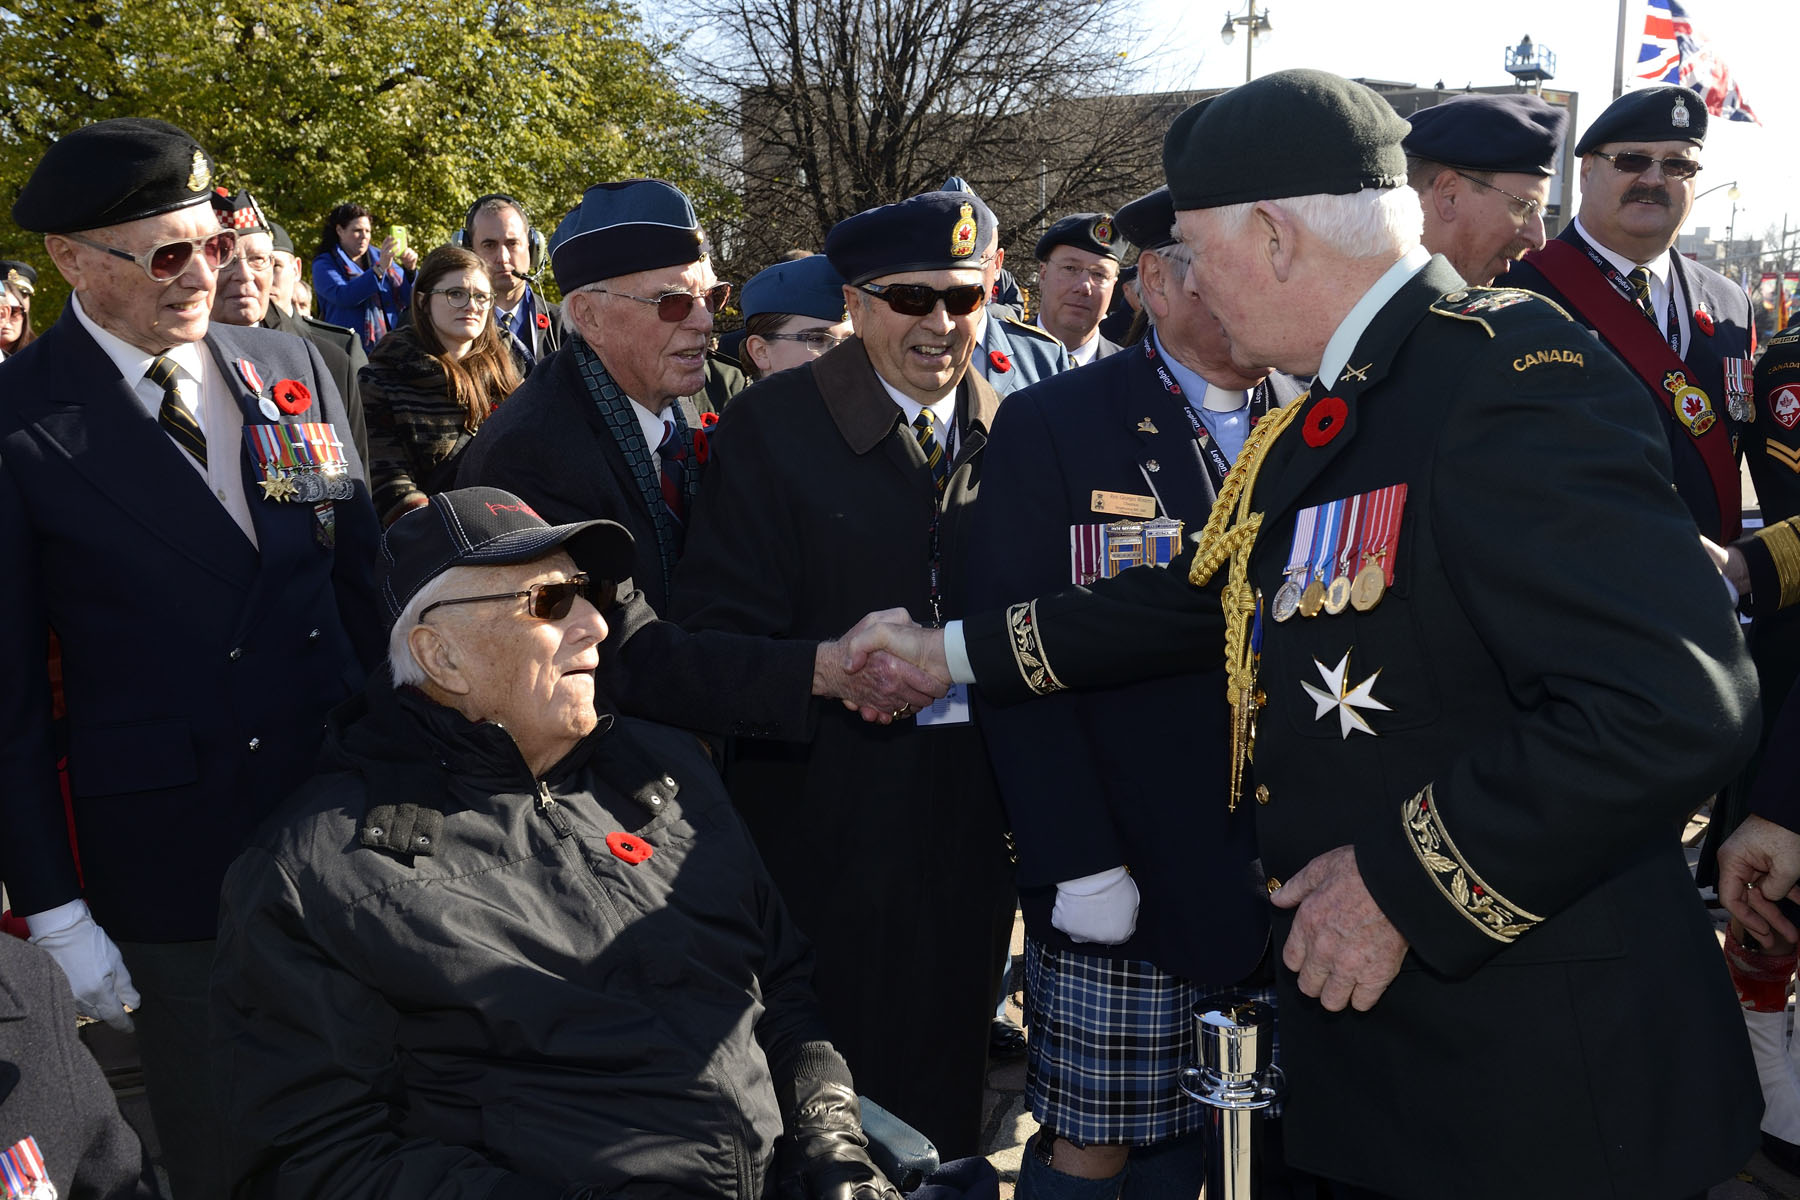 The Governor General and Commander-in-Chief shook the hands of veterans.